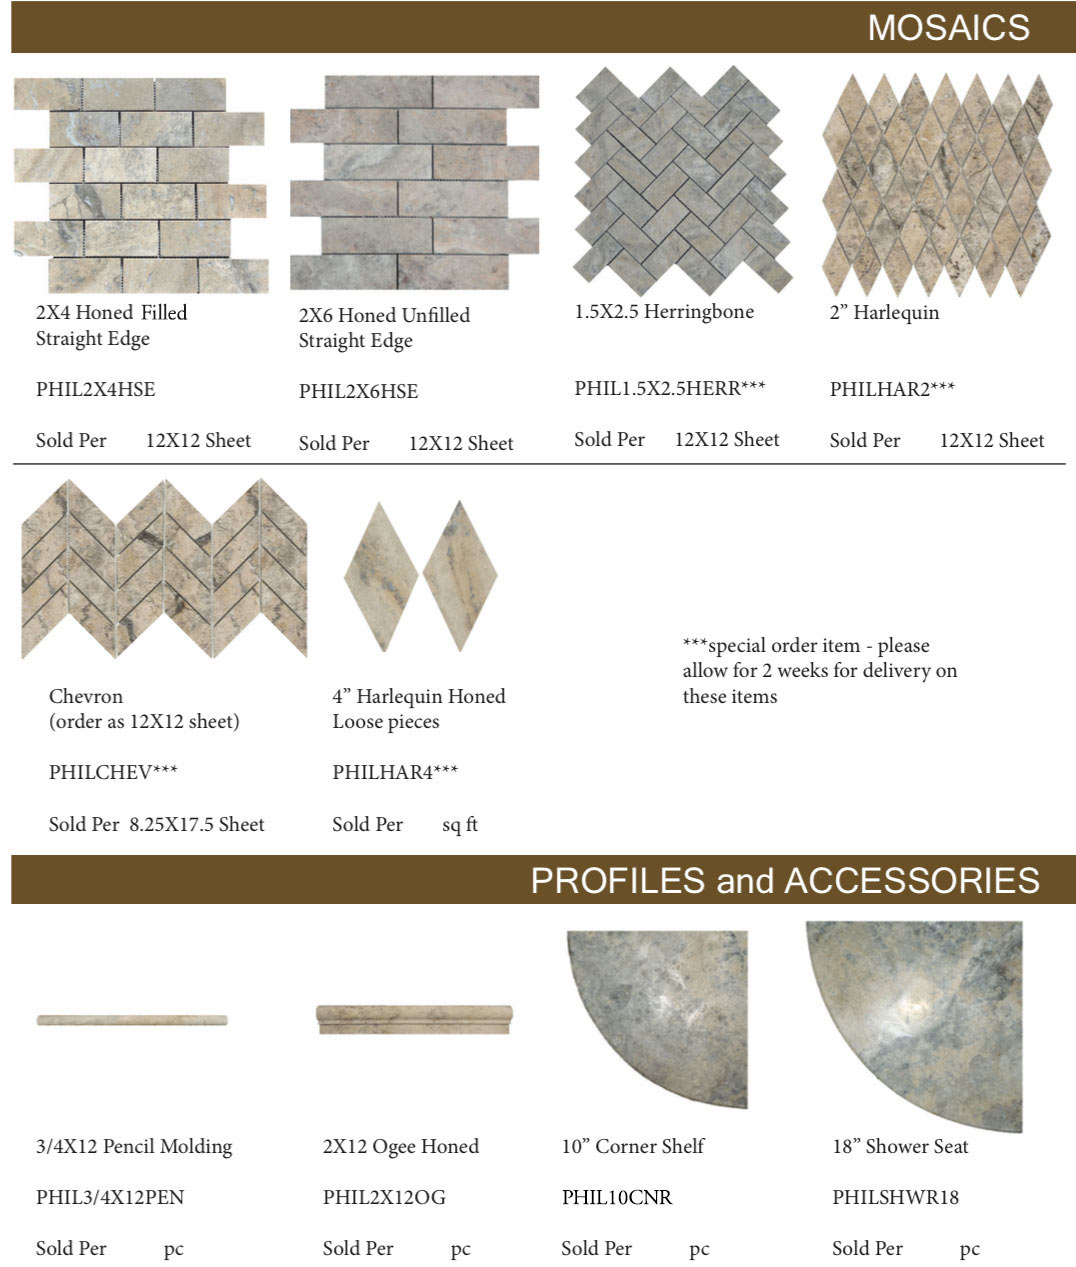 Philadelphia-Travertine-Mosaics-Profiles-and-Accessories